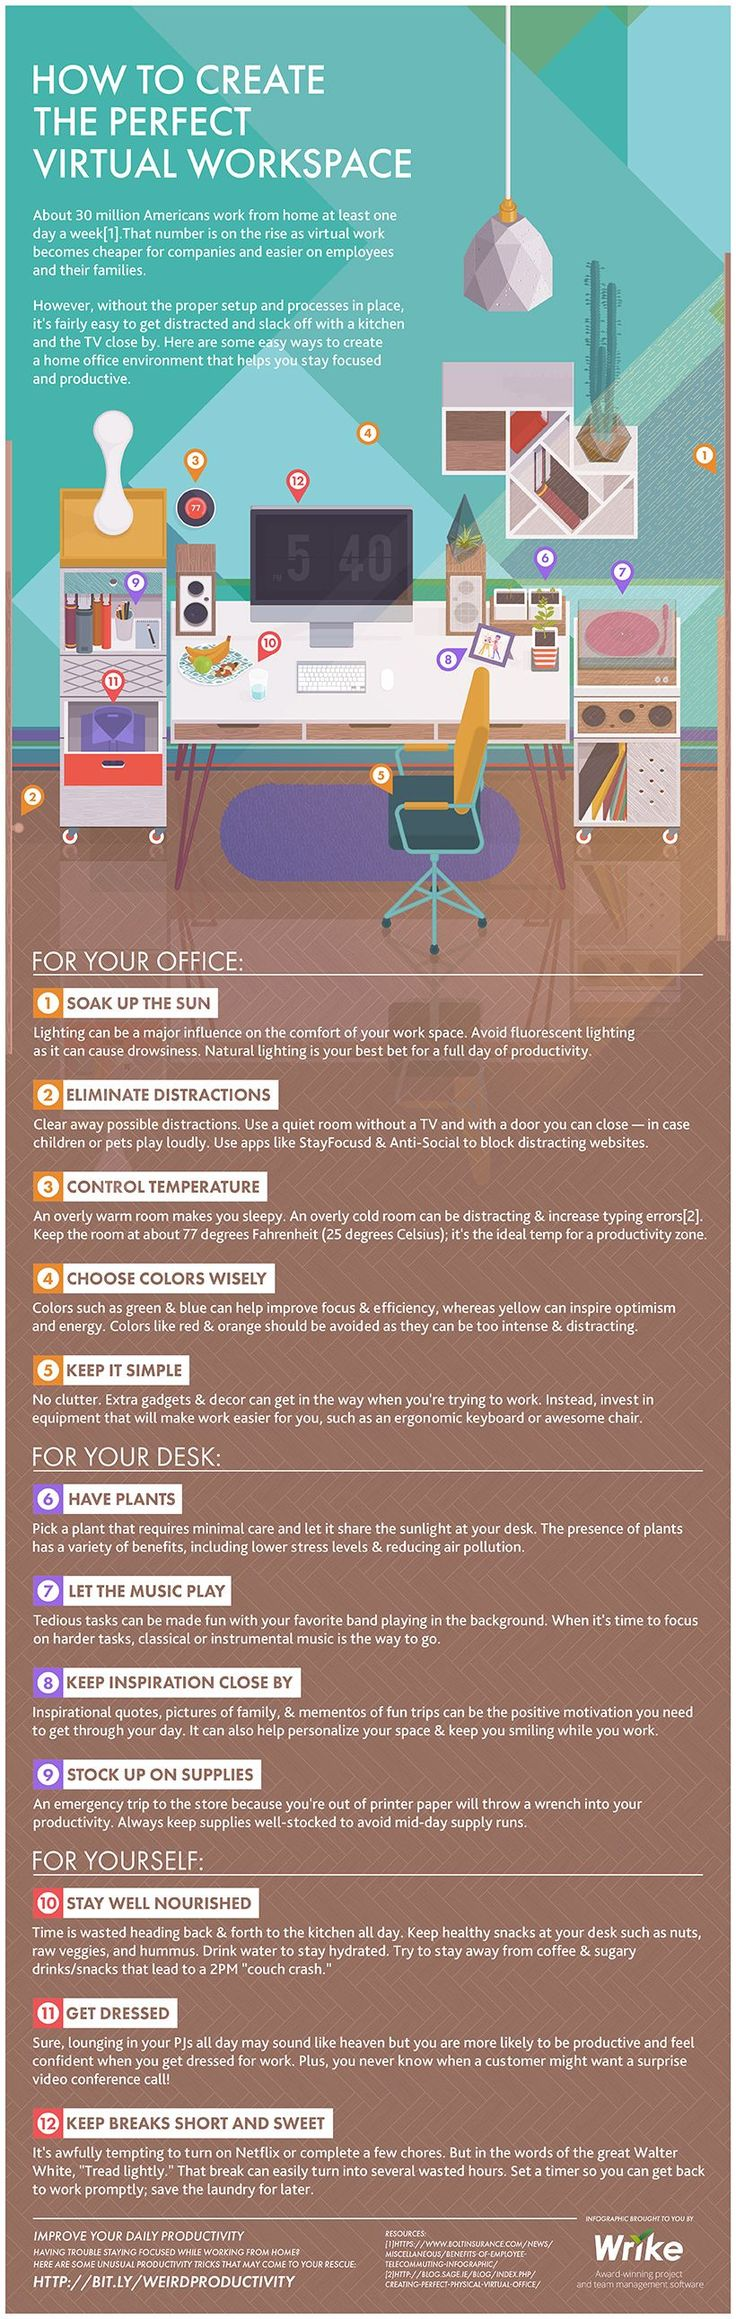 Discover new TIPS!  Discover new TIPS!  Published by: Wrike Original source: here TIPS FOR: home, house, flat, apartment, design, architecture, architecture, interior design, furniture, home improvement, work, business, health, mental health, psychology, productivity, life work balance, home office, working at home, home office decor, home office design, productive home office, how to make home office,